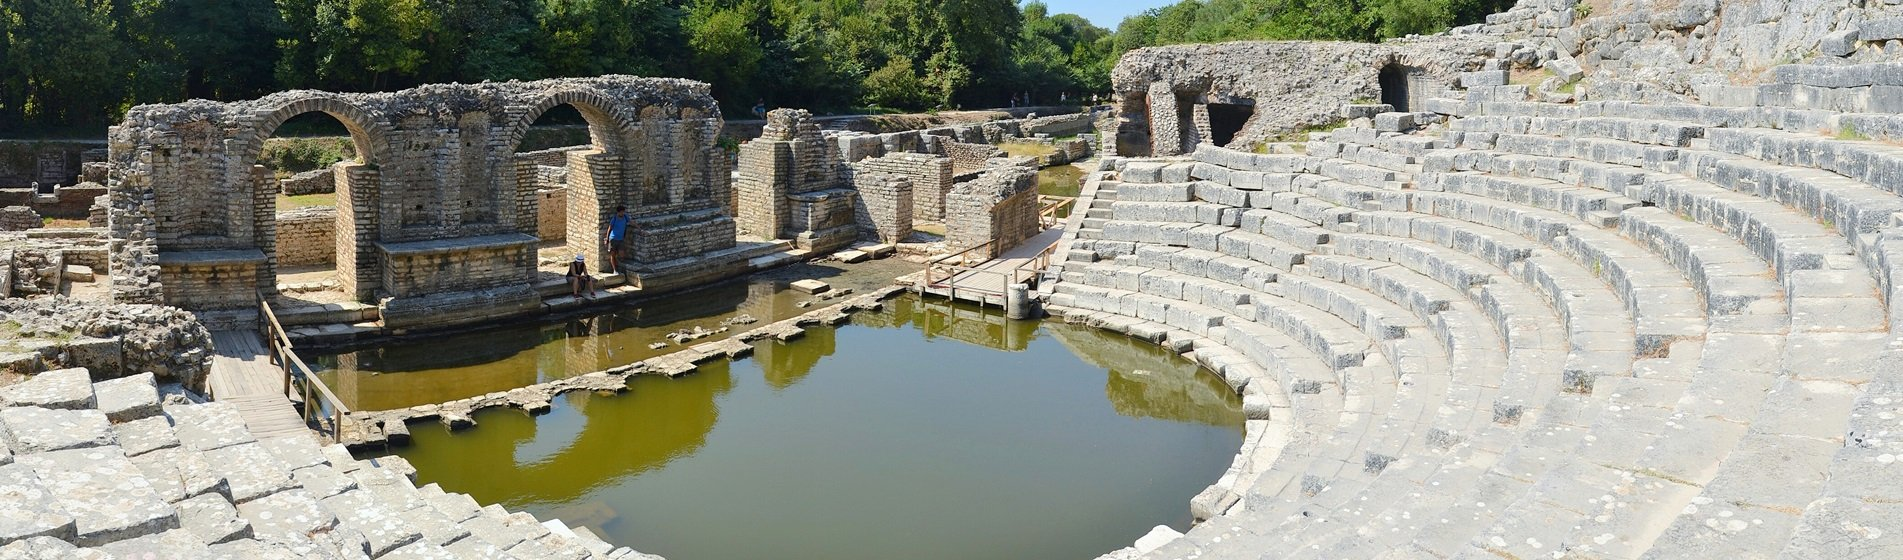 Amphitheater of Butrint